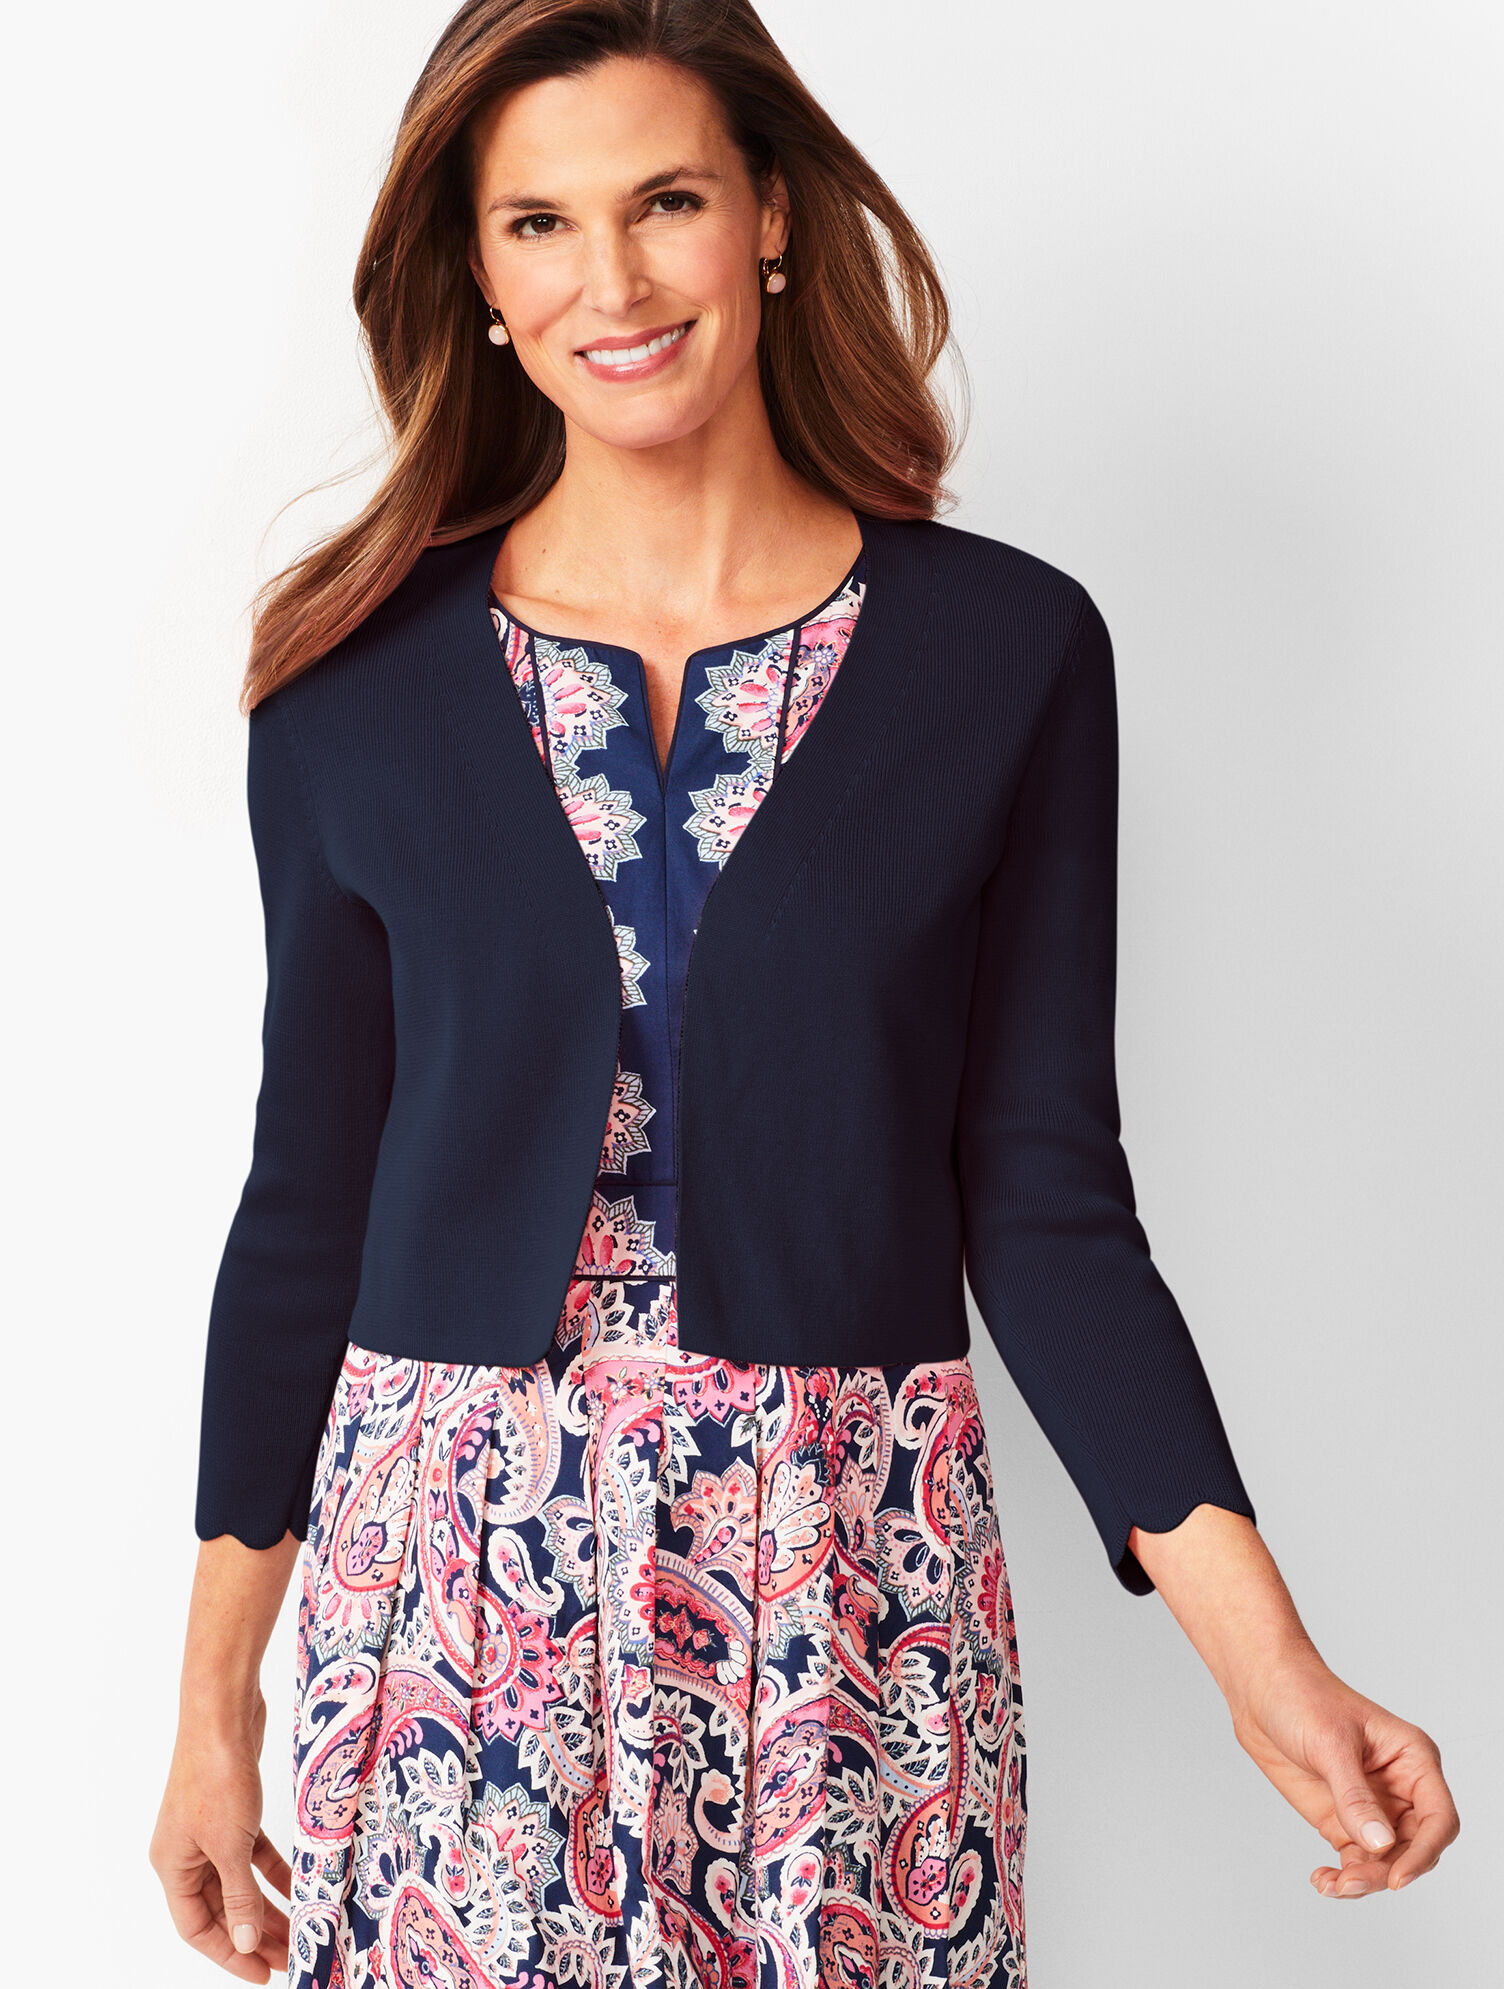 The 5 Best Dress Cardigans. The Wardrobe Consultant